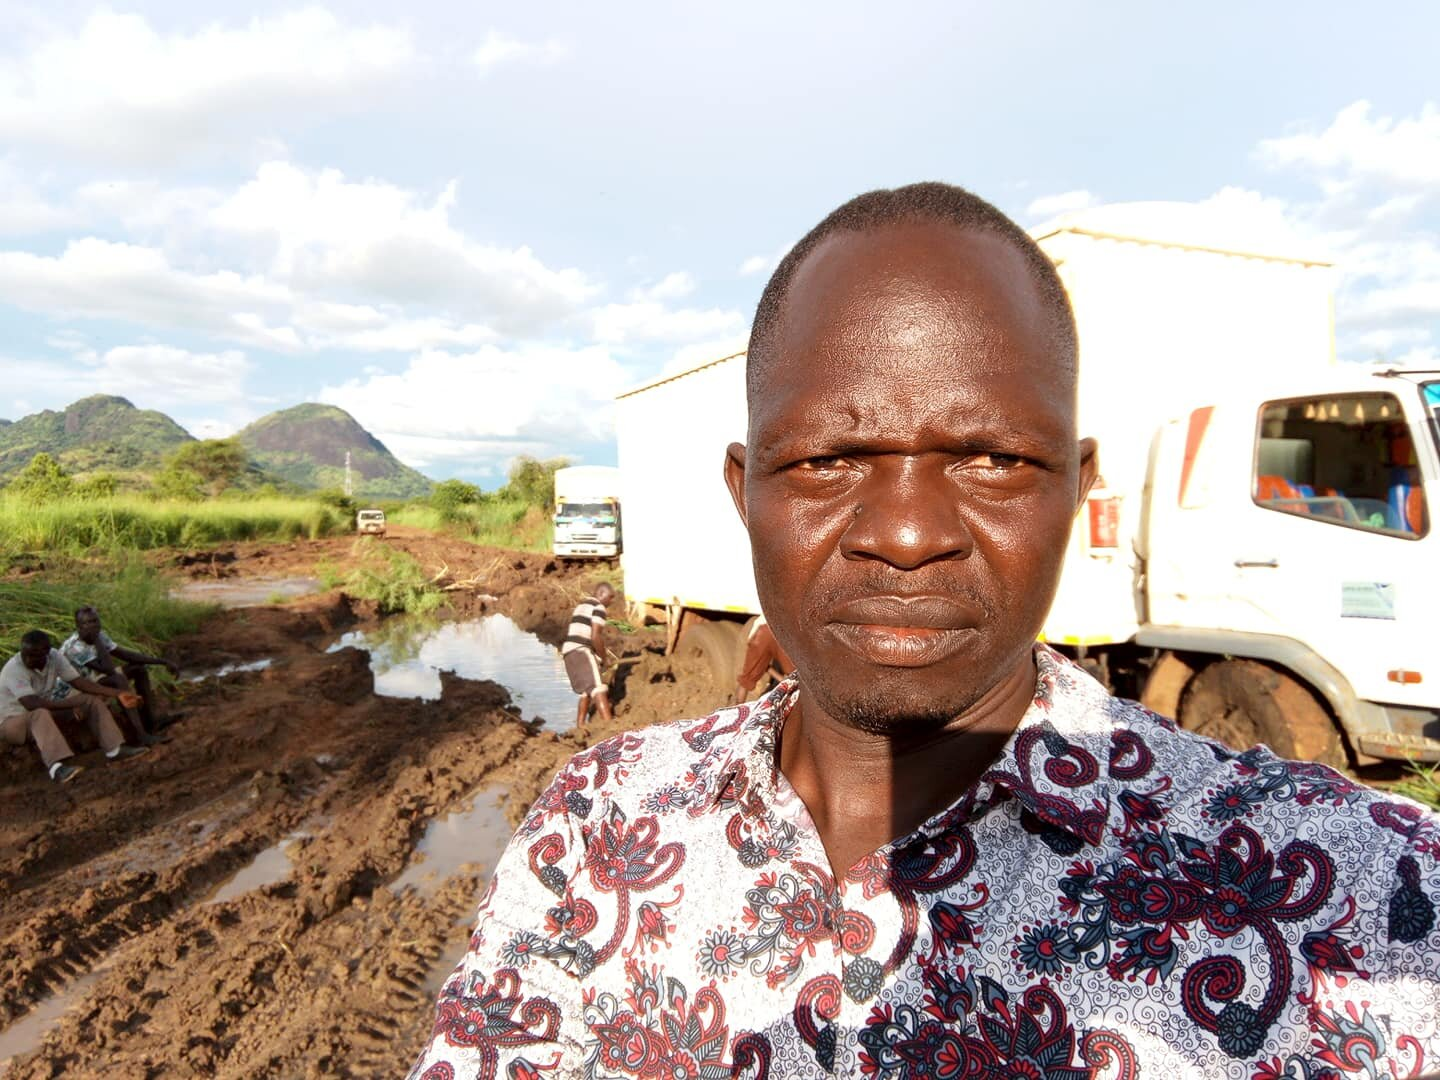 Peter Lomago with food trucks stuck in the mud in South Sudan